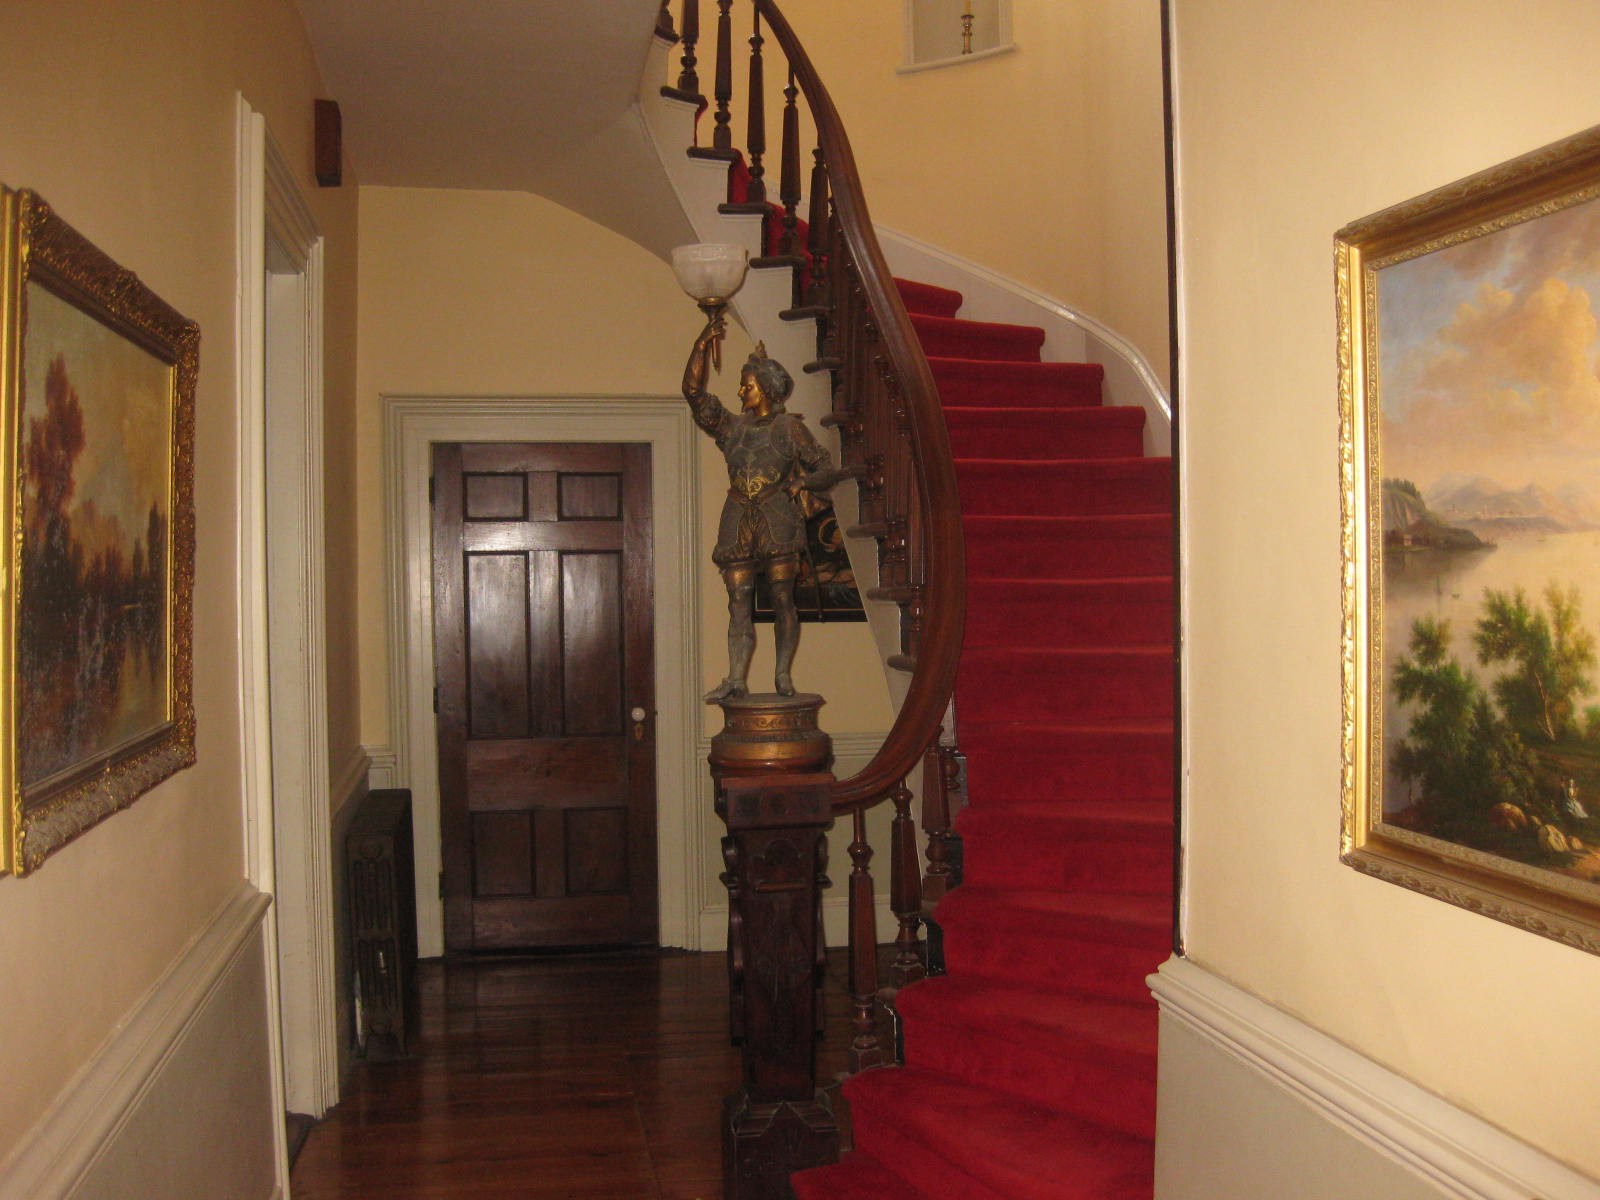 House Tour, Part 2: The Entrance Hall & Staircase